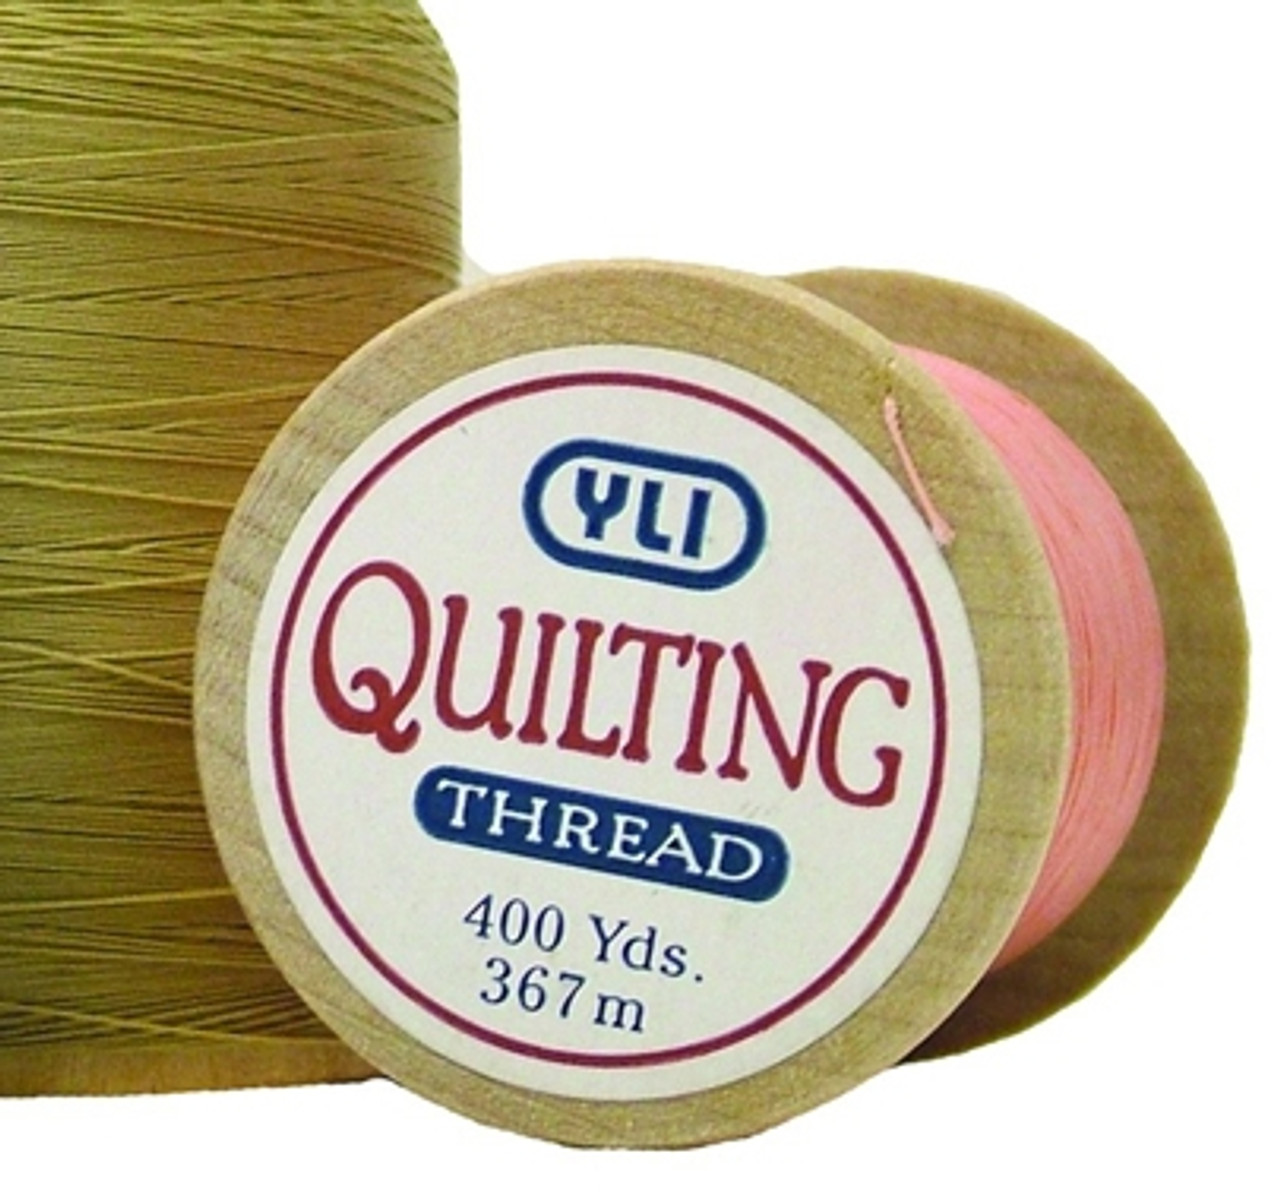 YLI          Hand Quilting